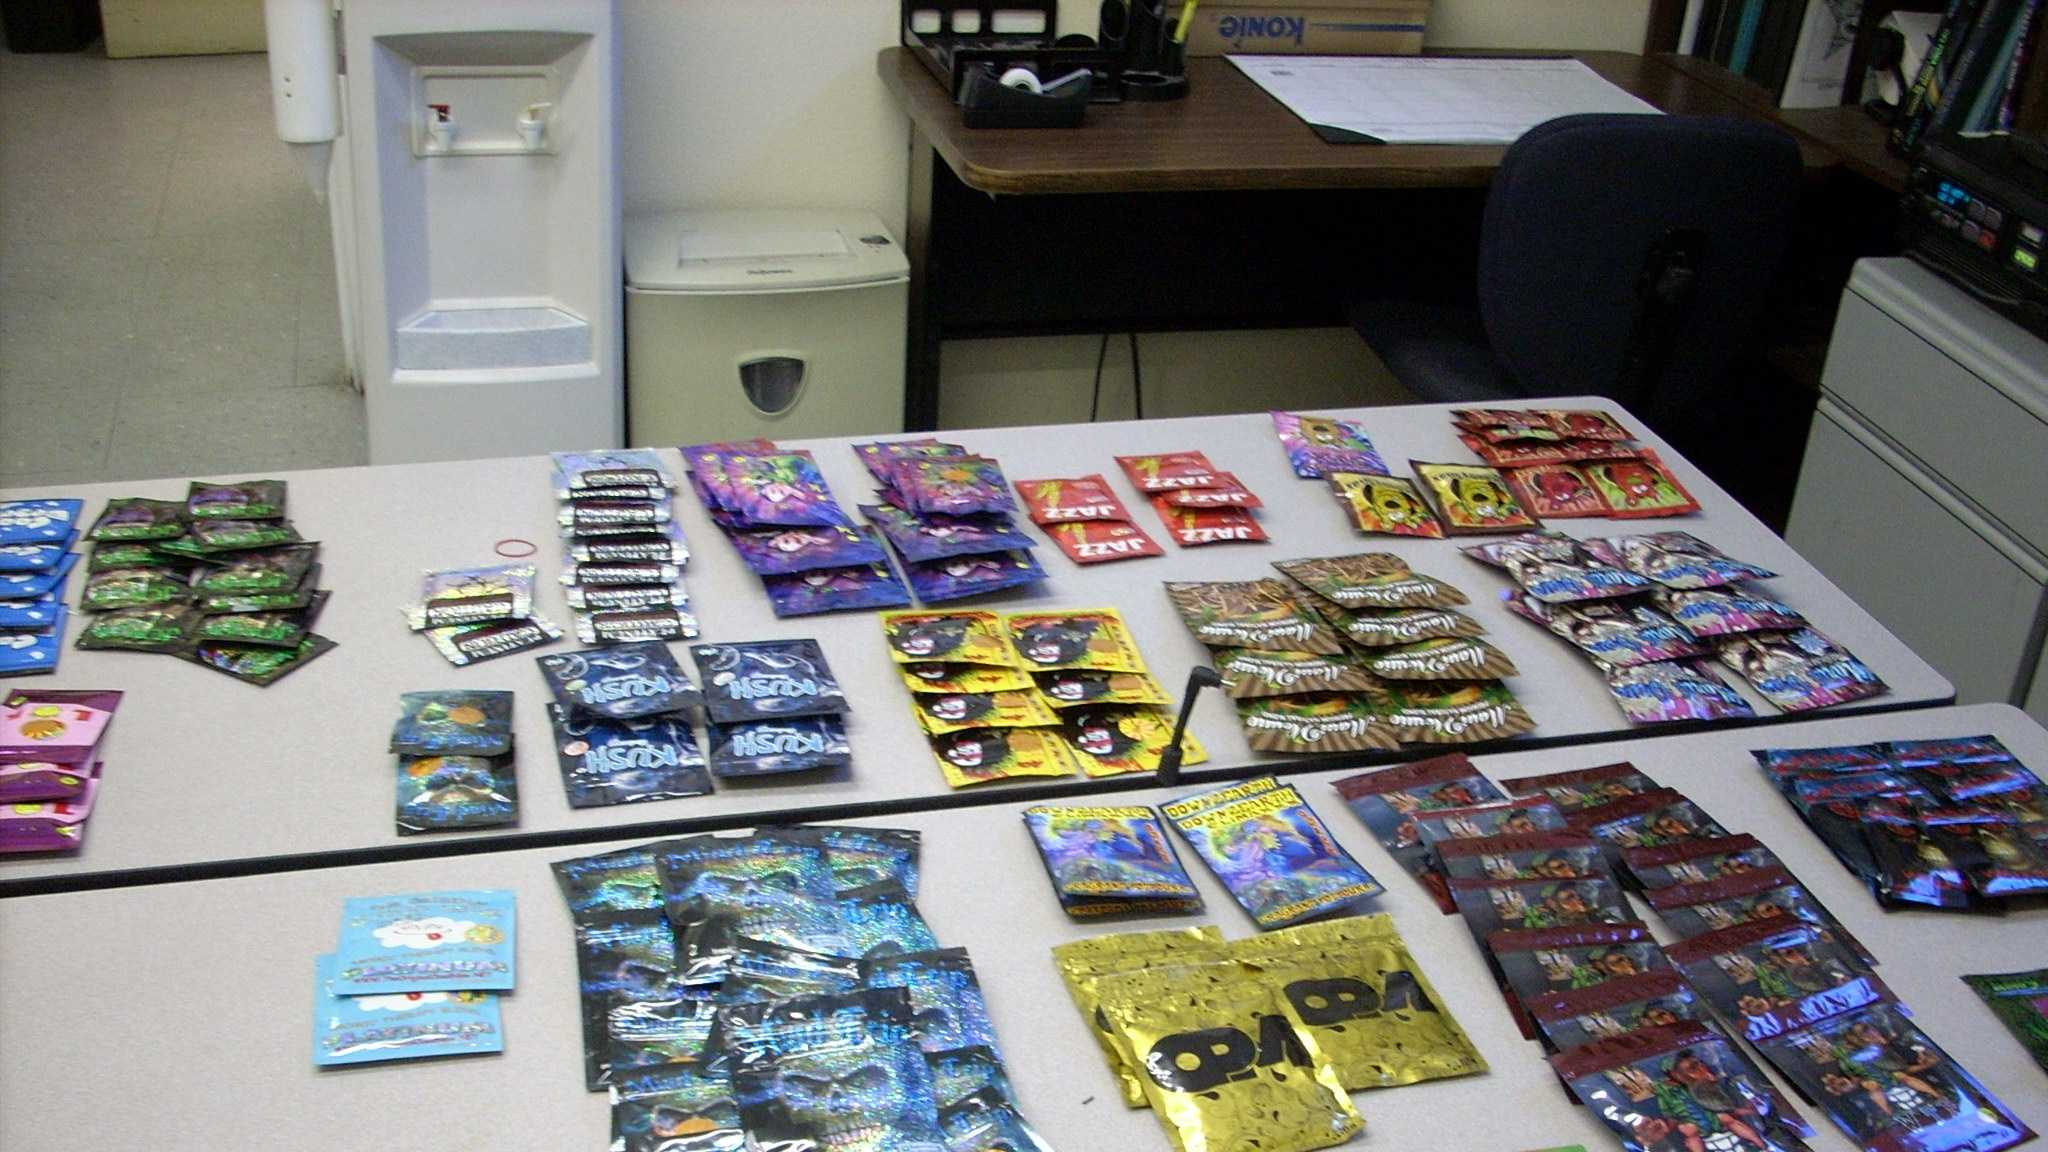 synthetic drugs photo1.jpg